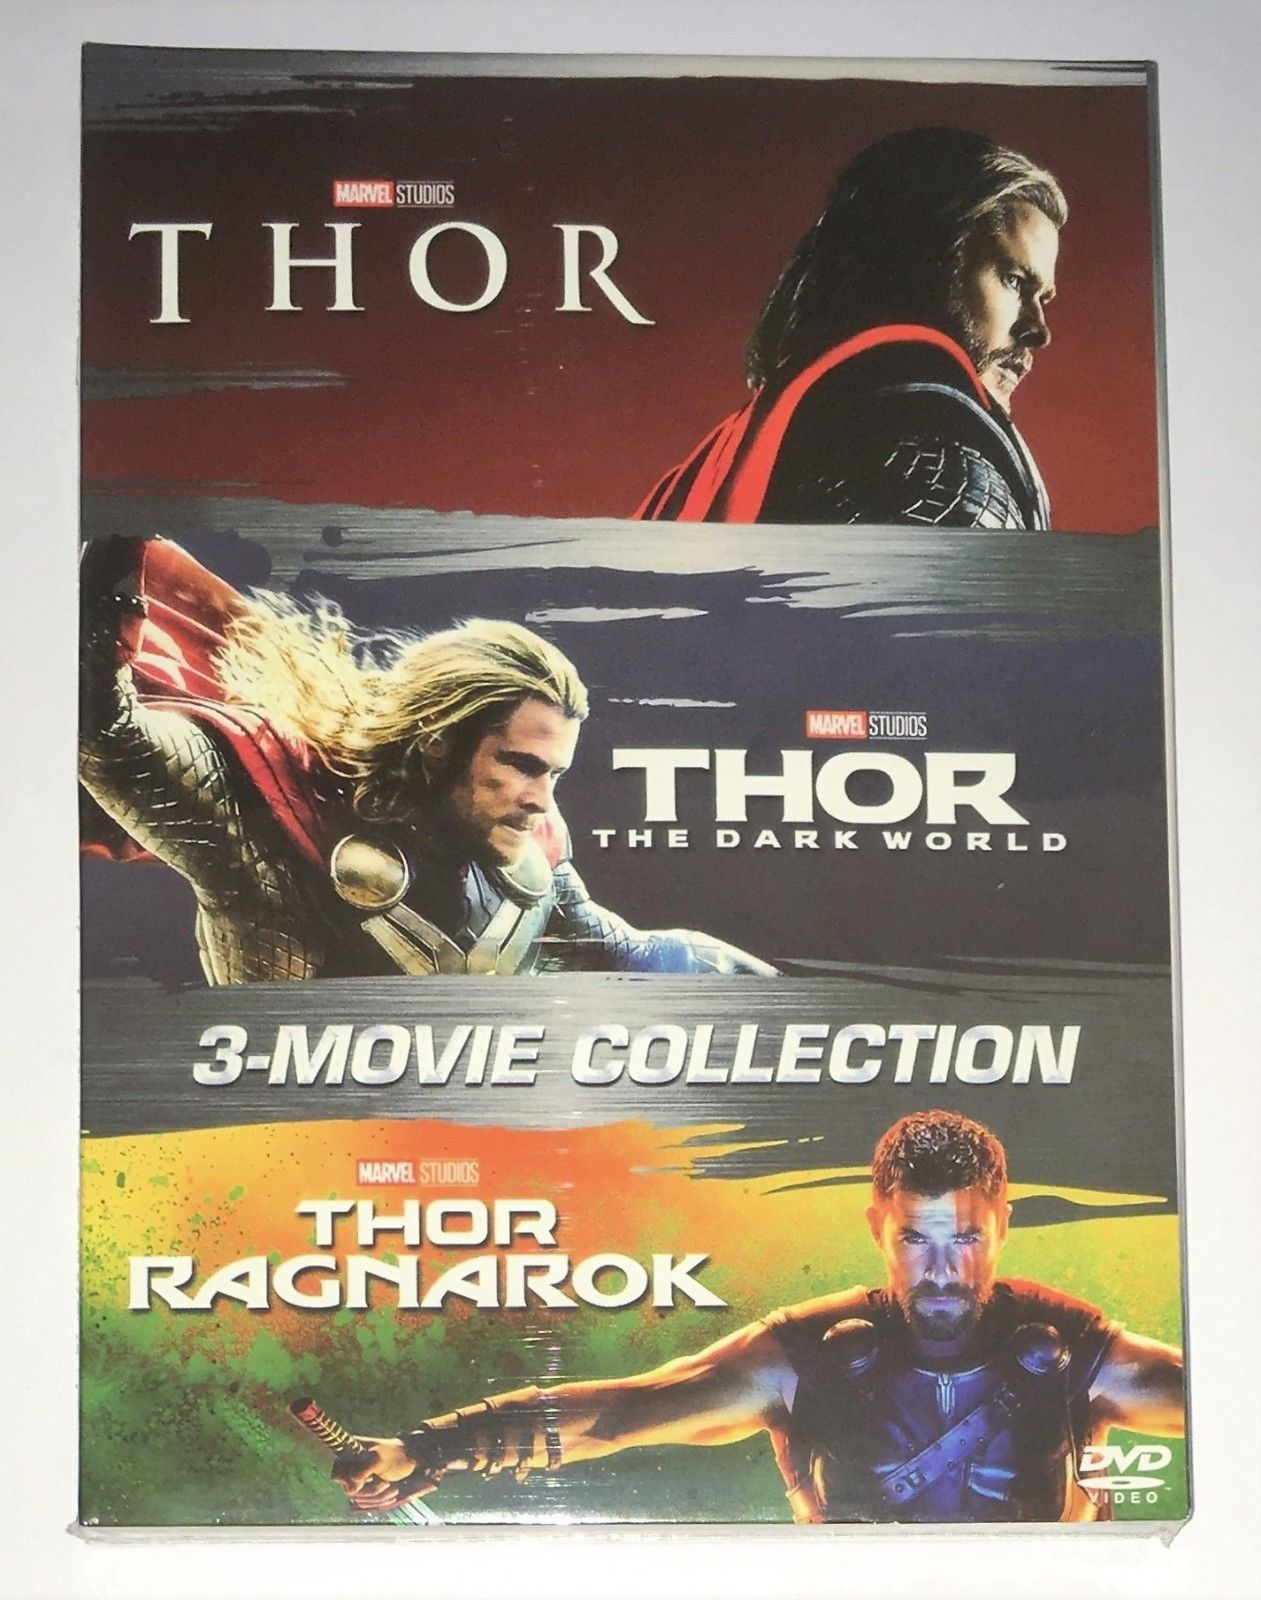 THOR 3-Movie Collection [DVD Box Set New] 1-3 Complete Trilogy 1 2 3